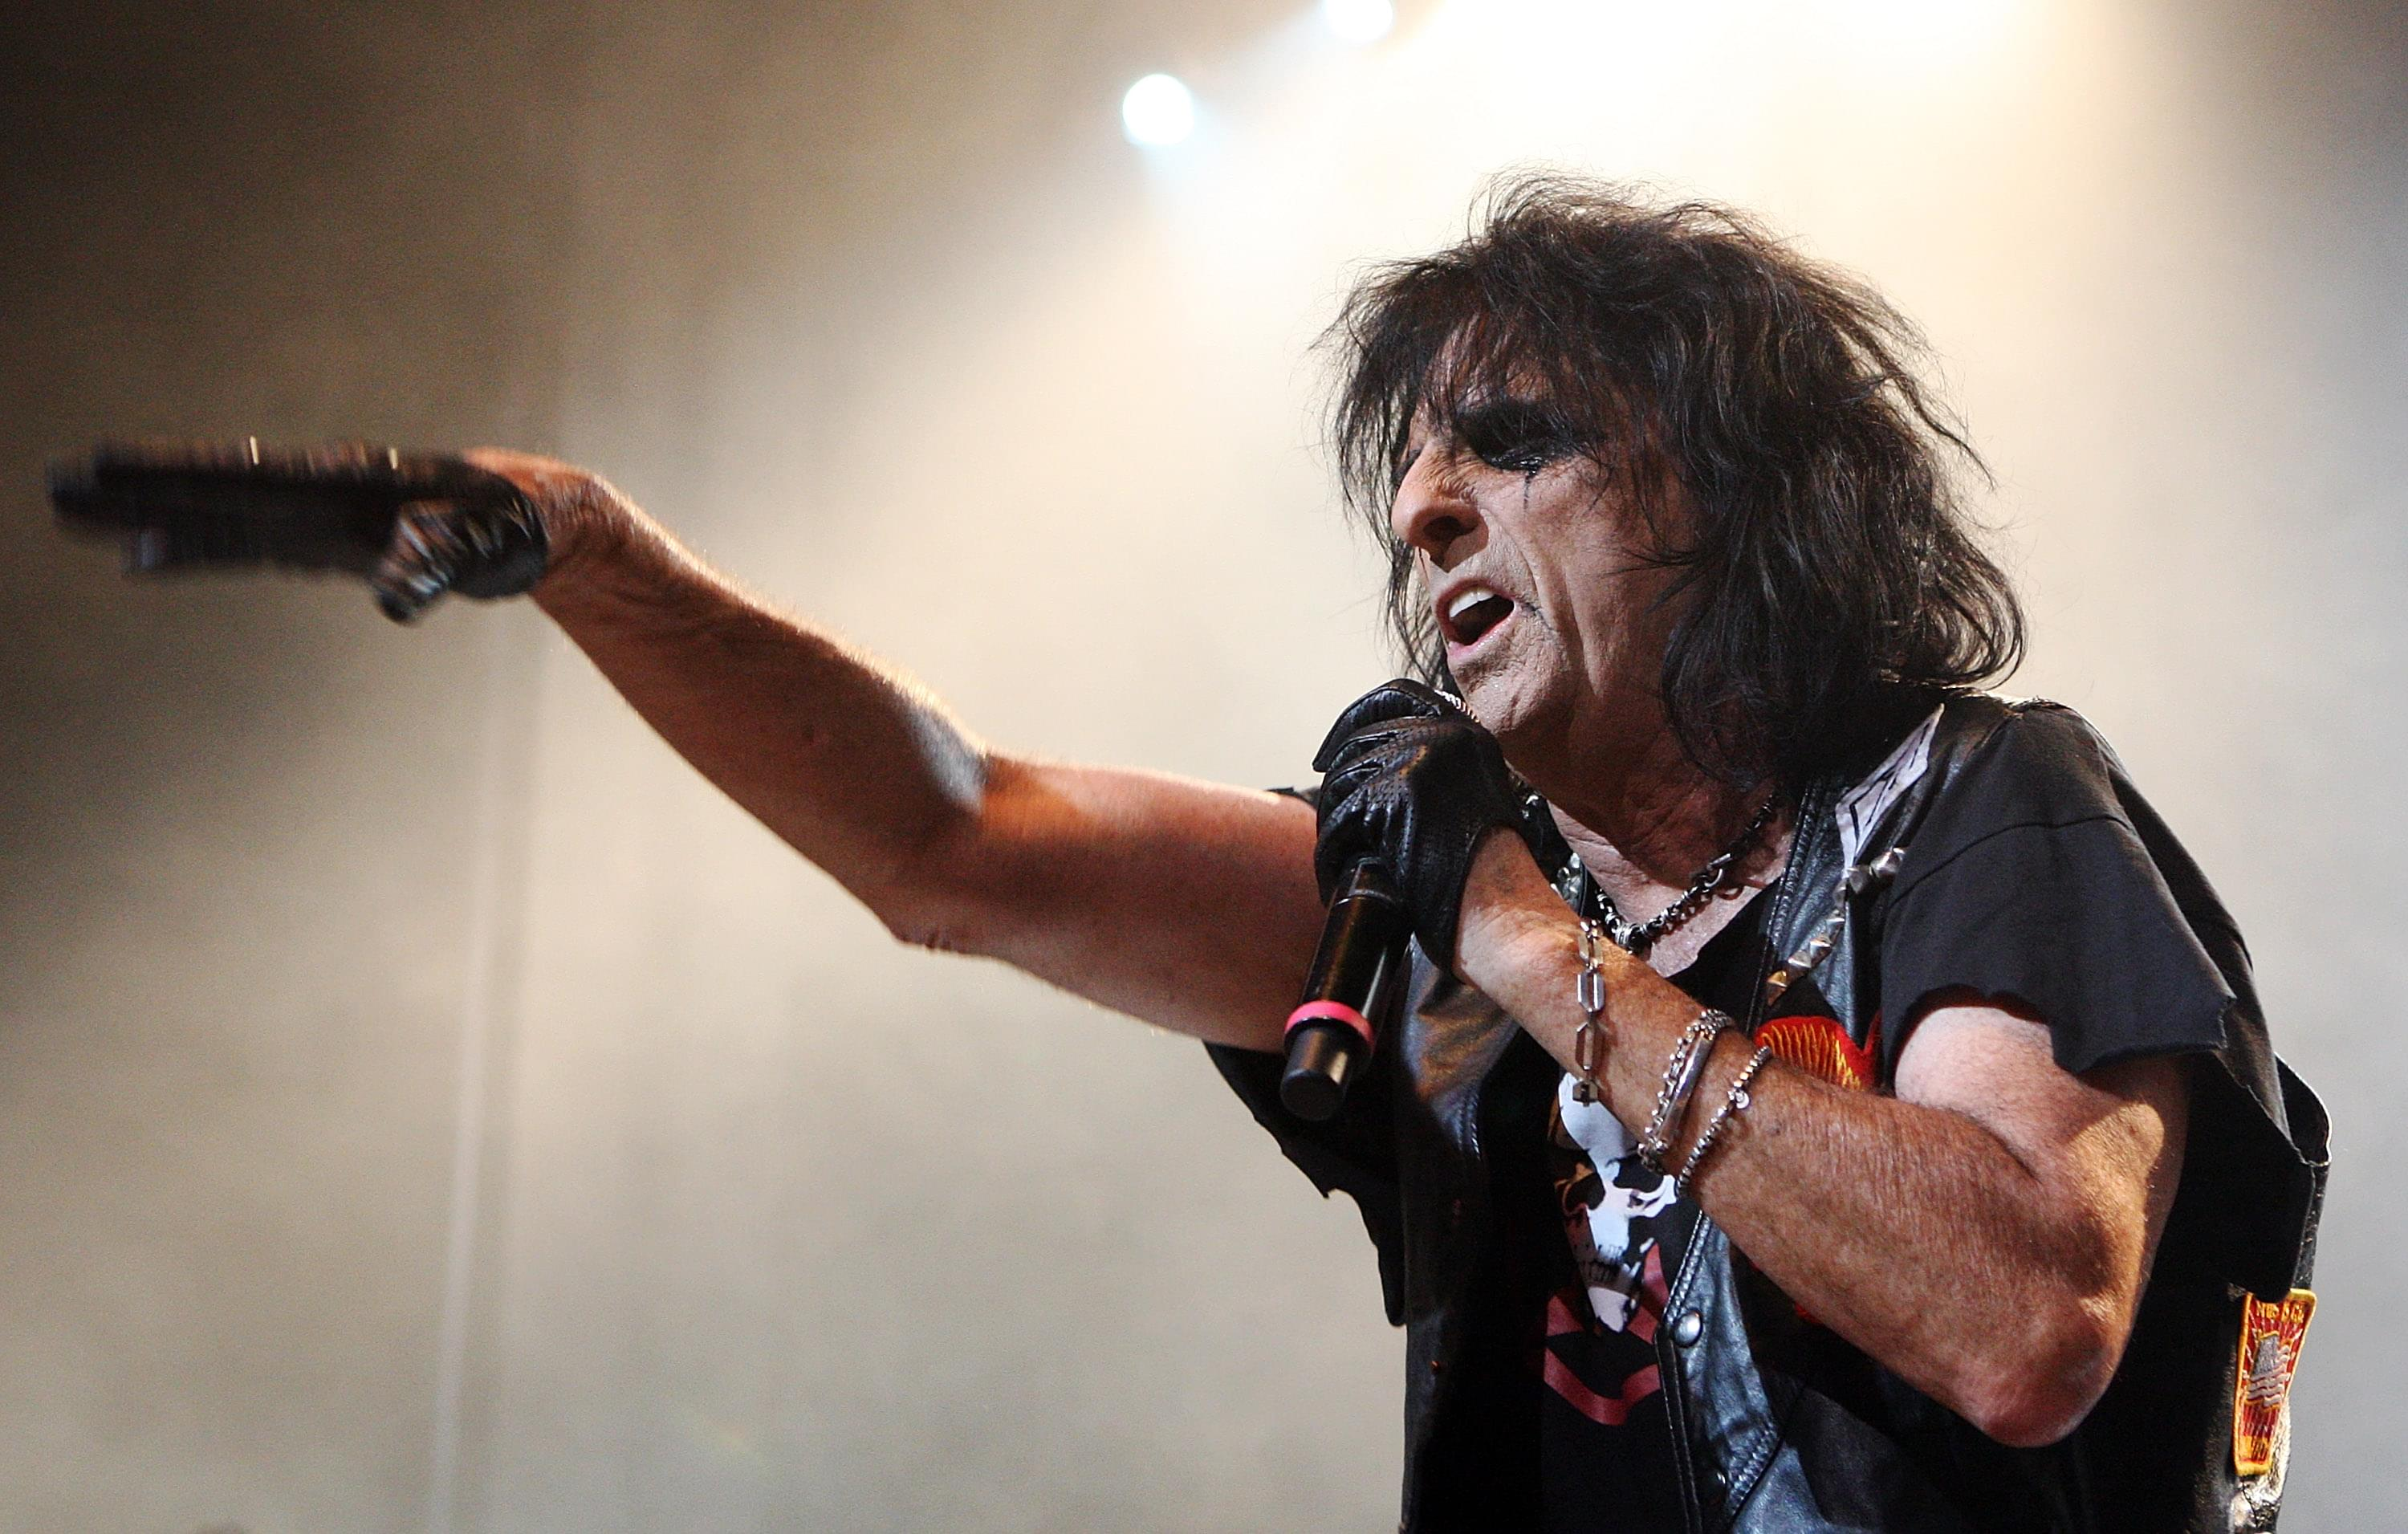 Alice Cooper is spending his quarantine… TAP DANCING??